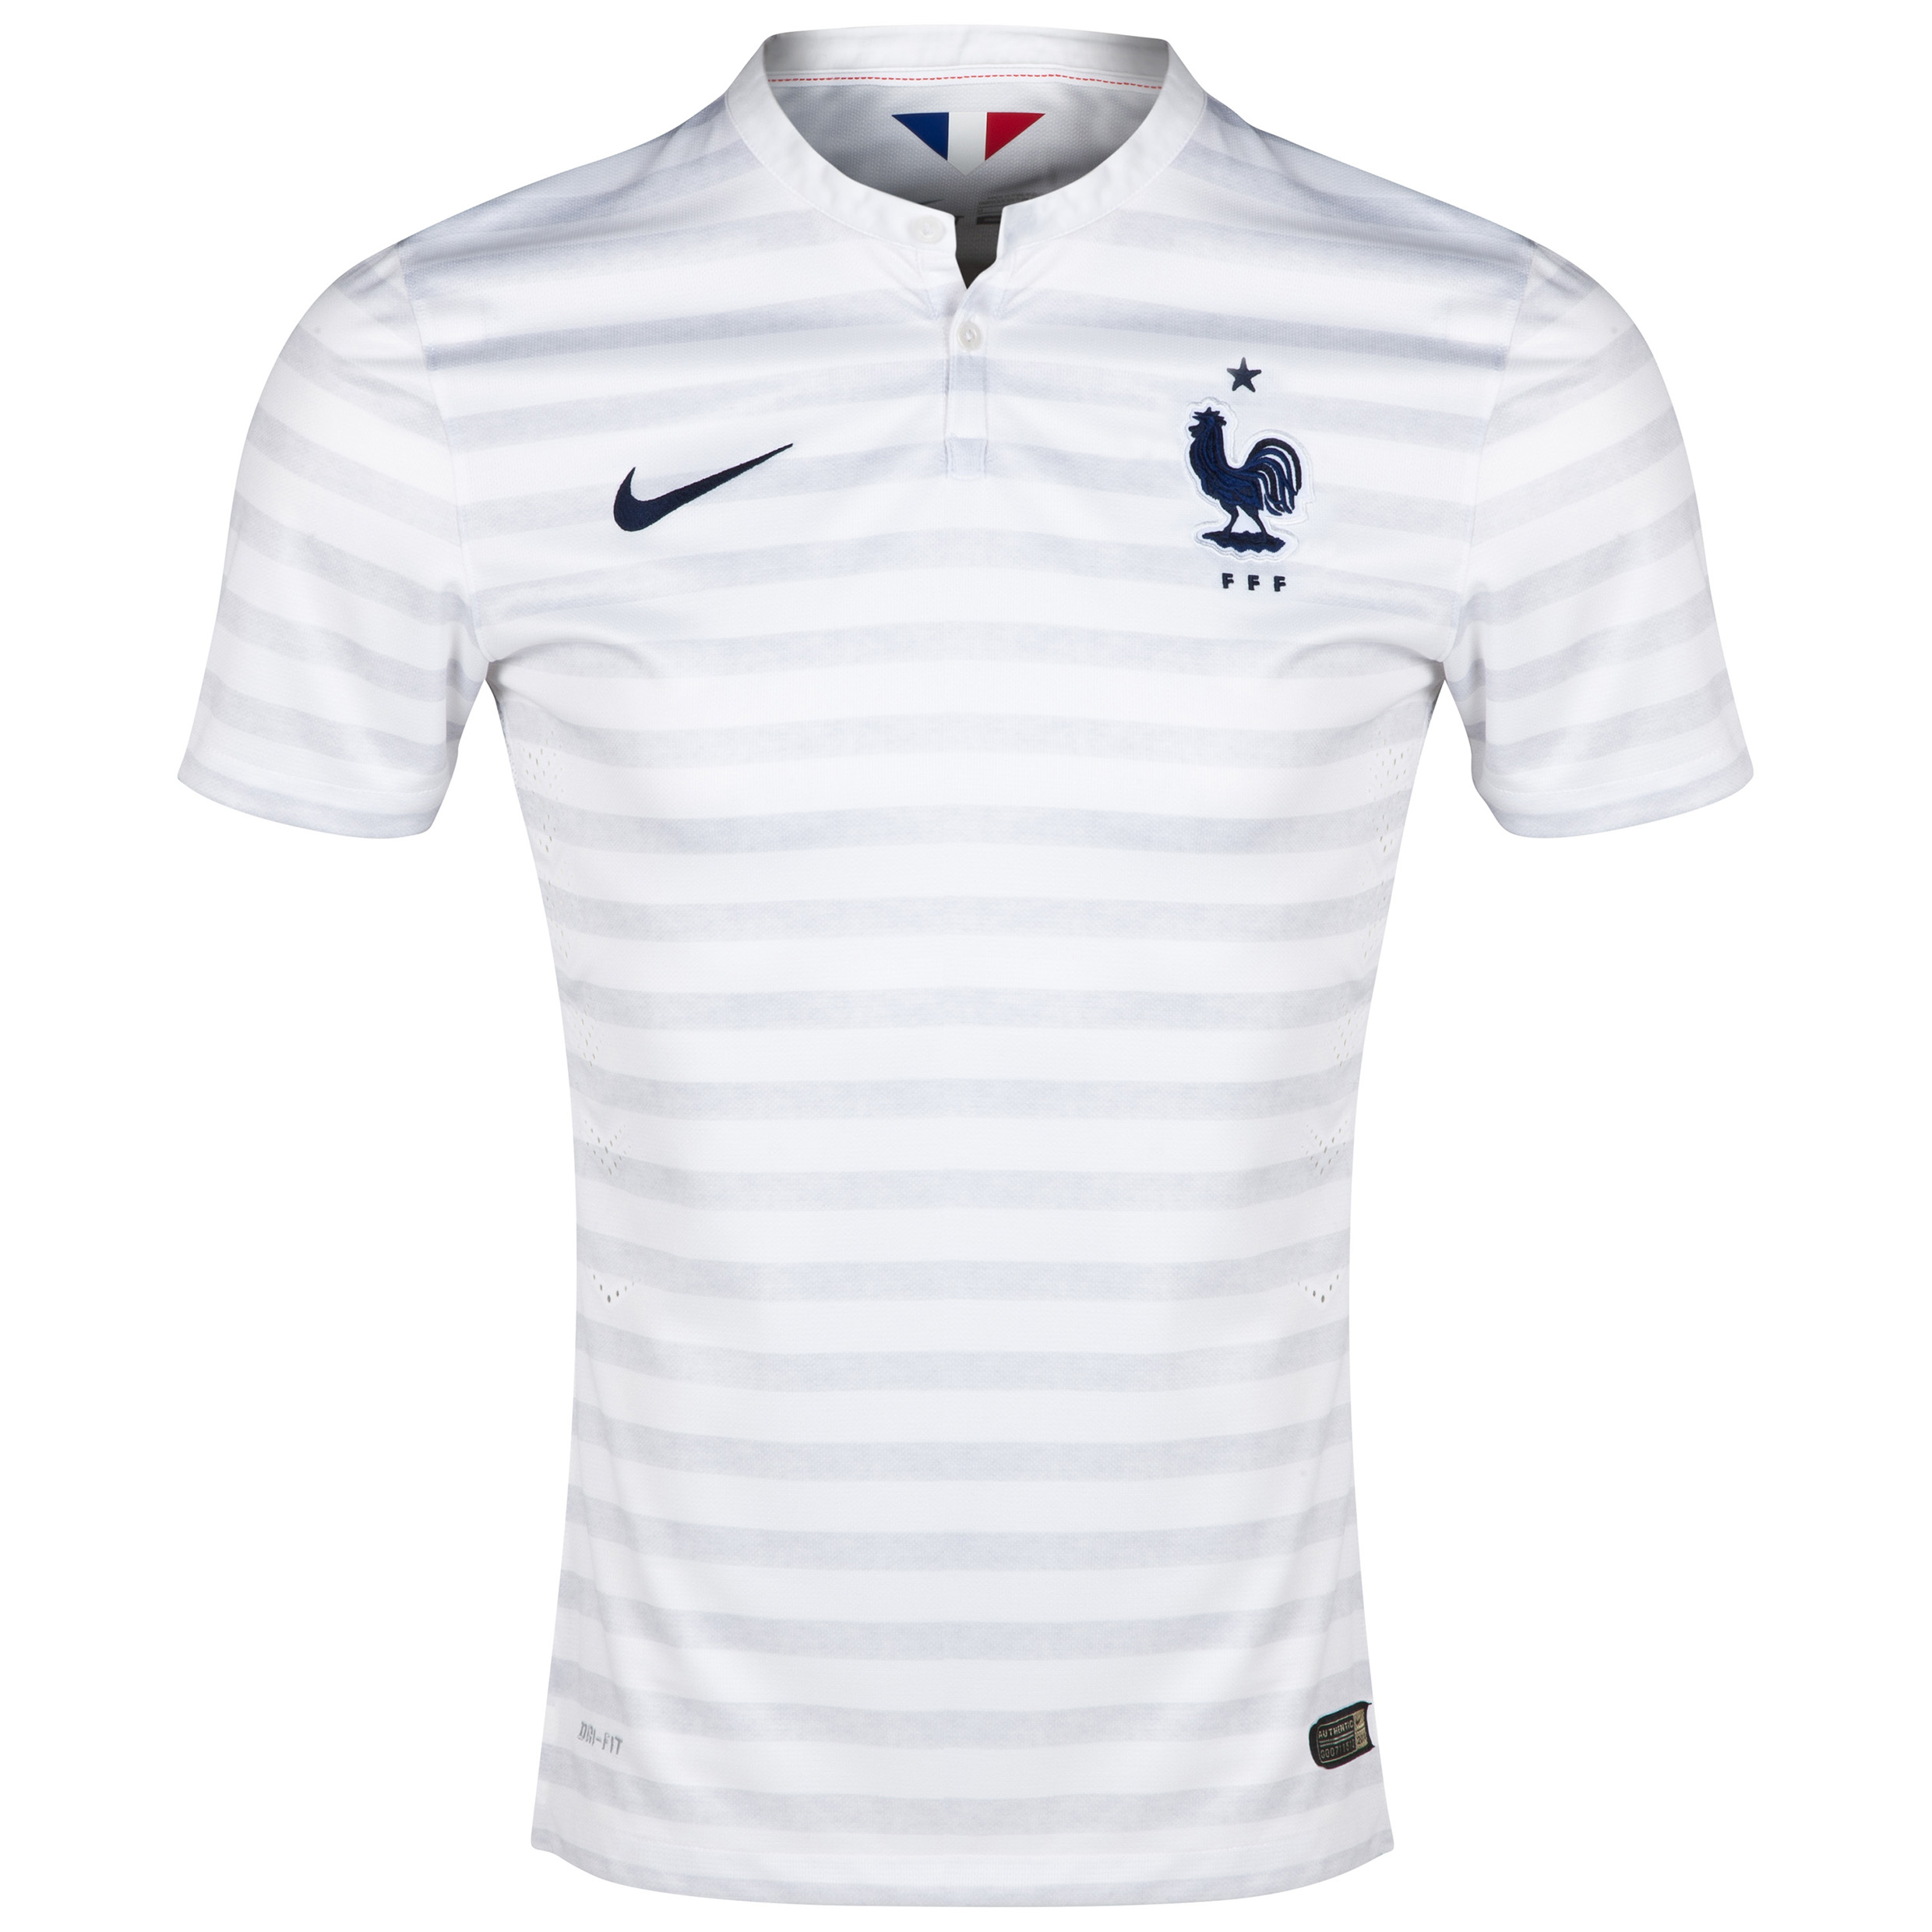 France Match Away Shirt 2014 White